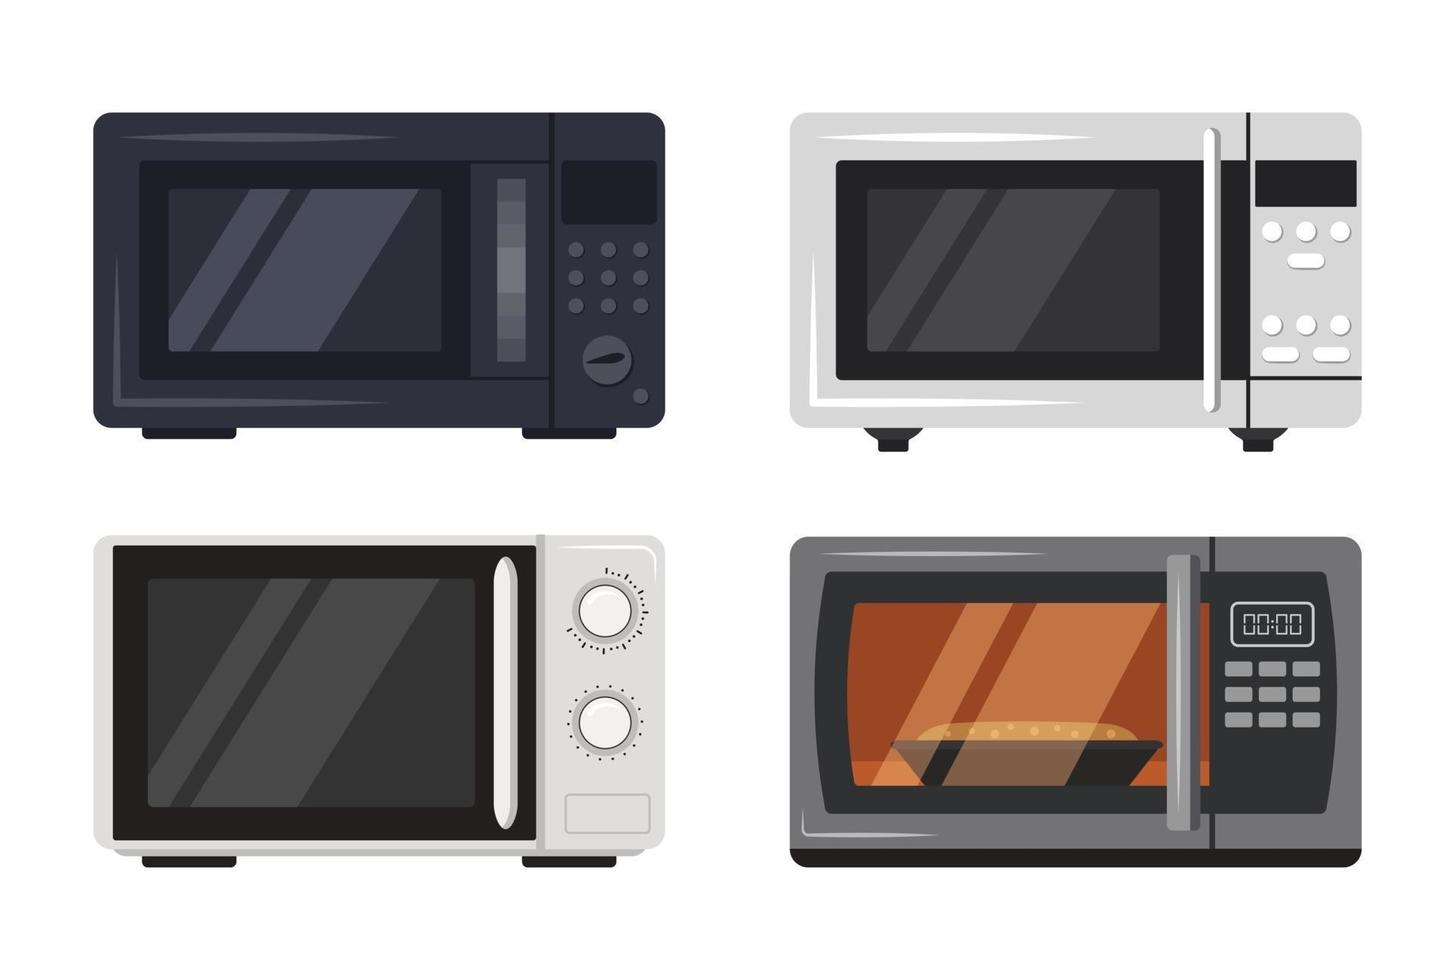 Microwave oven icons set Front view of kitchen appliances vector